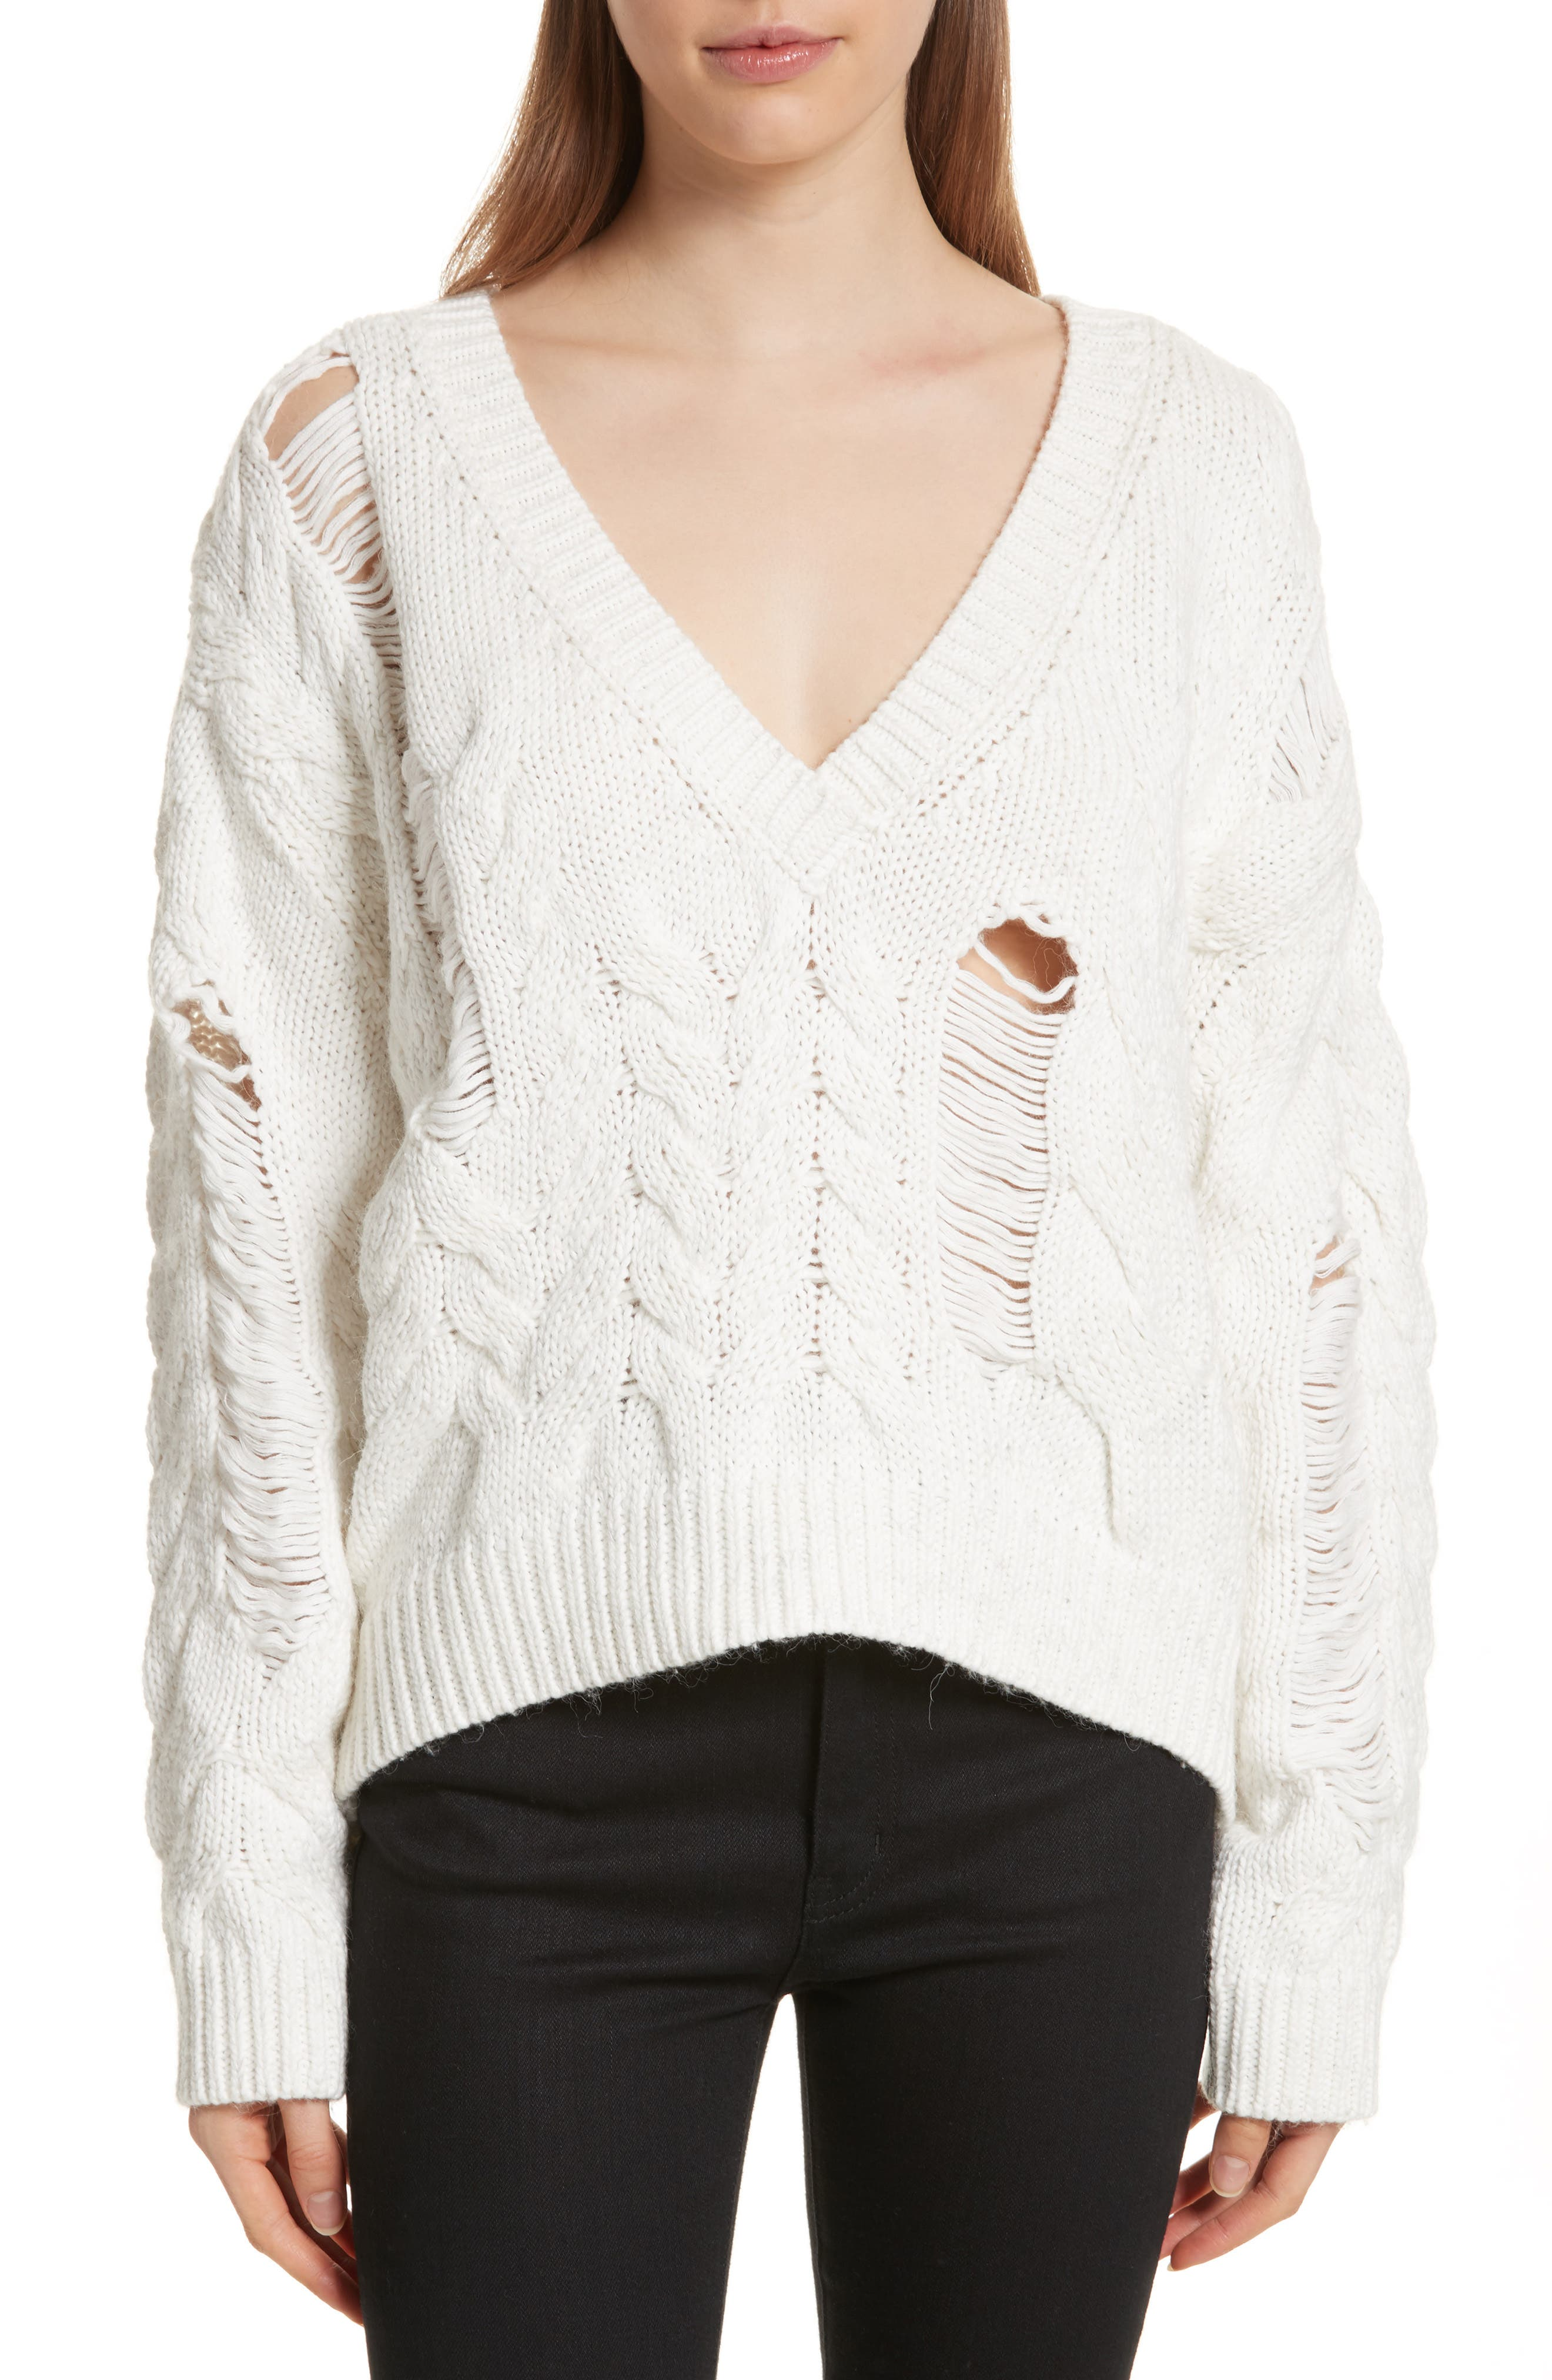 Fighla Distressed Sweater,                         Main,                         color, 010